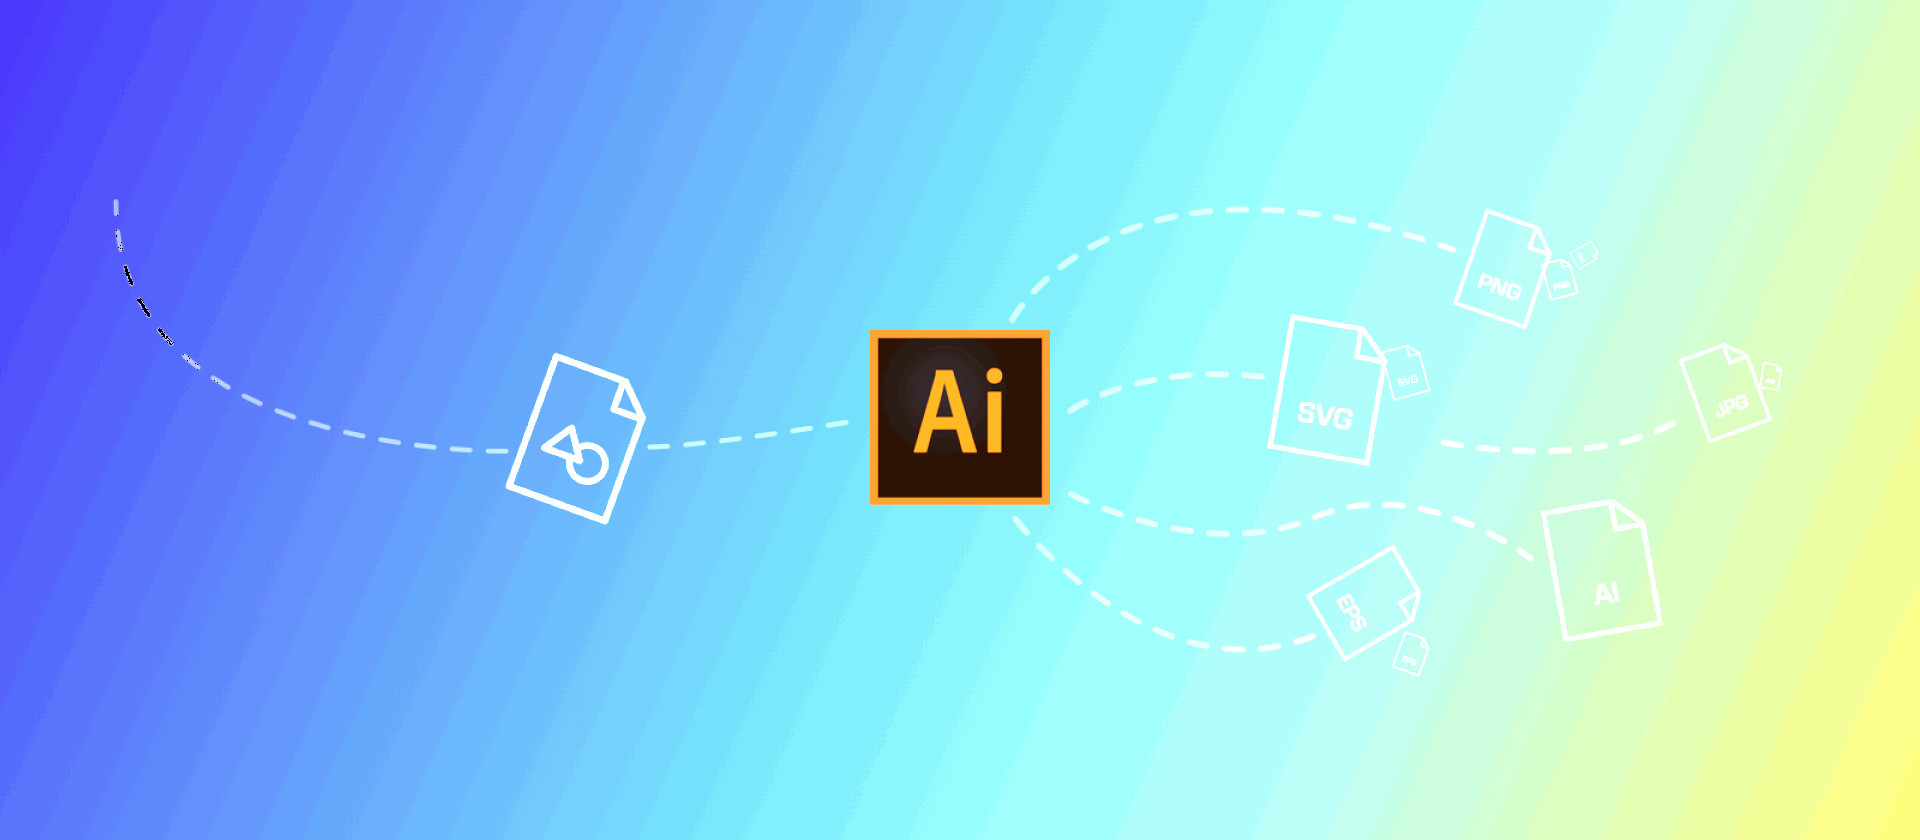 Vector In Adobe: How To Export Vector Icons To Multiple Sizes And Formats In Adobe Illustrator Cbbdaef